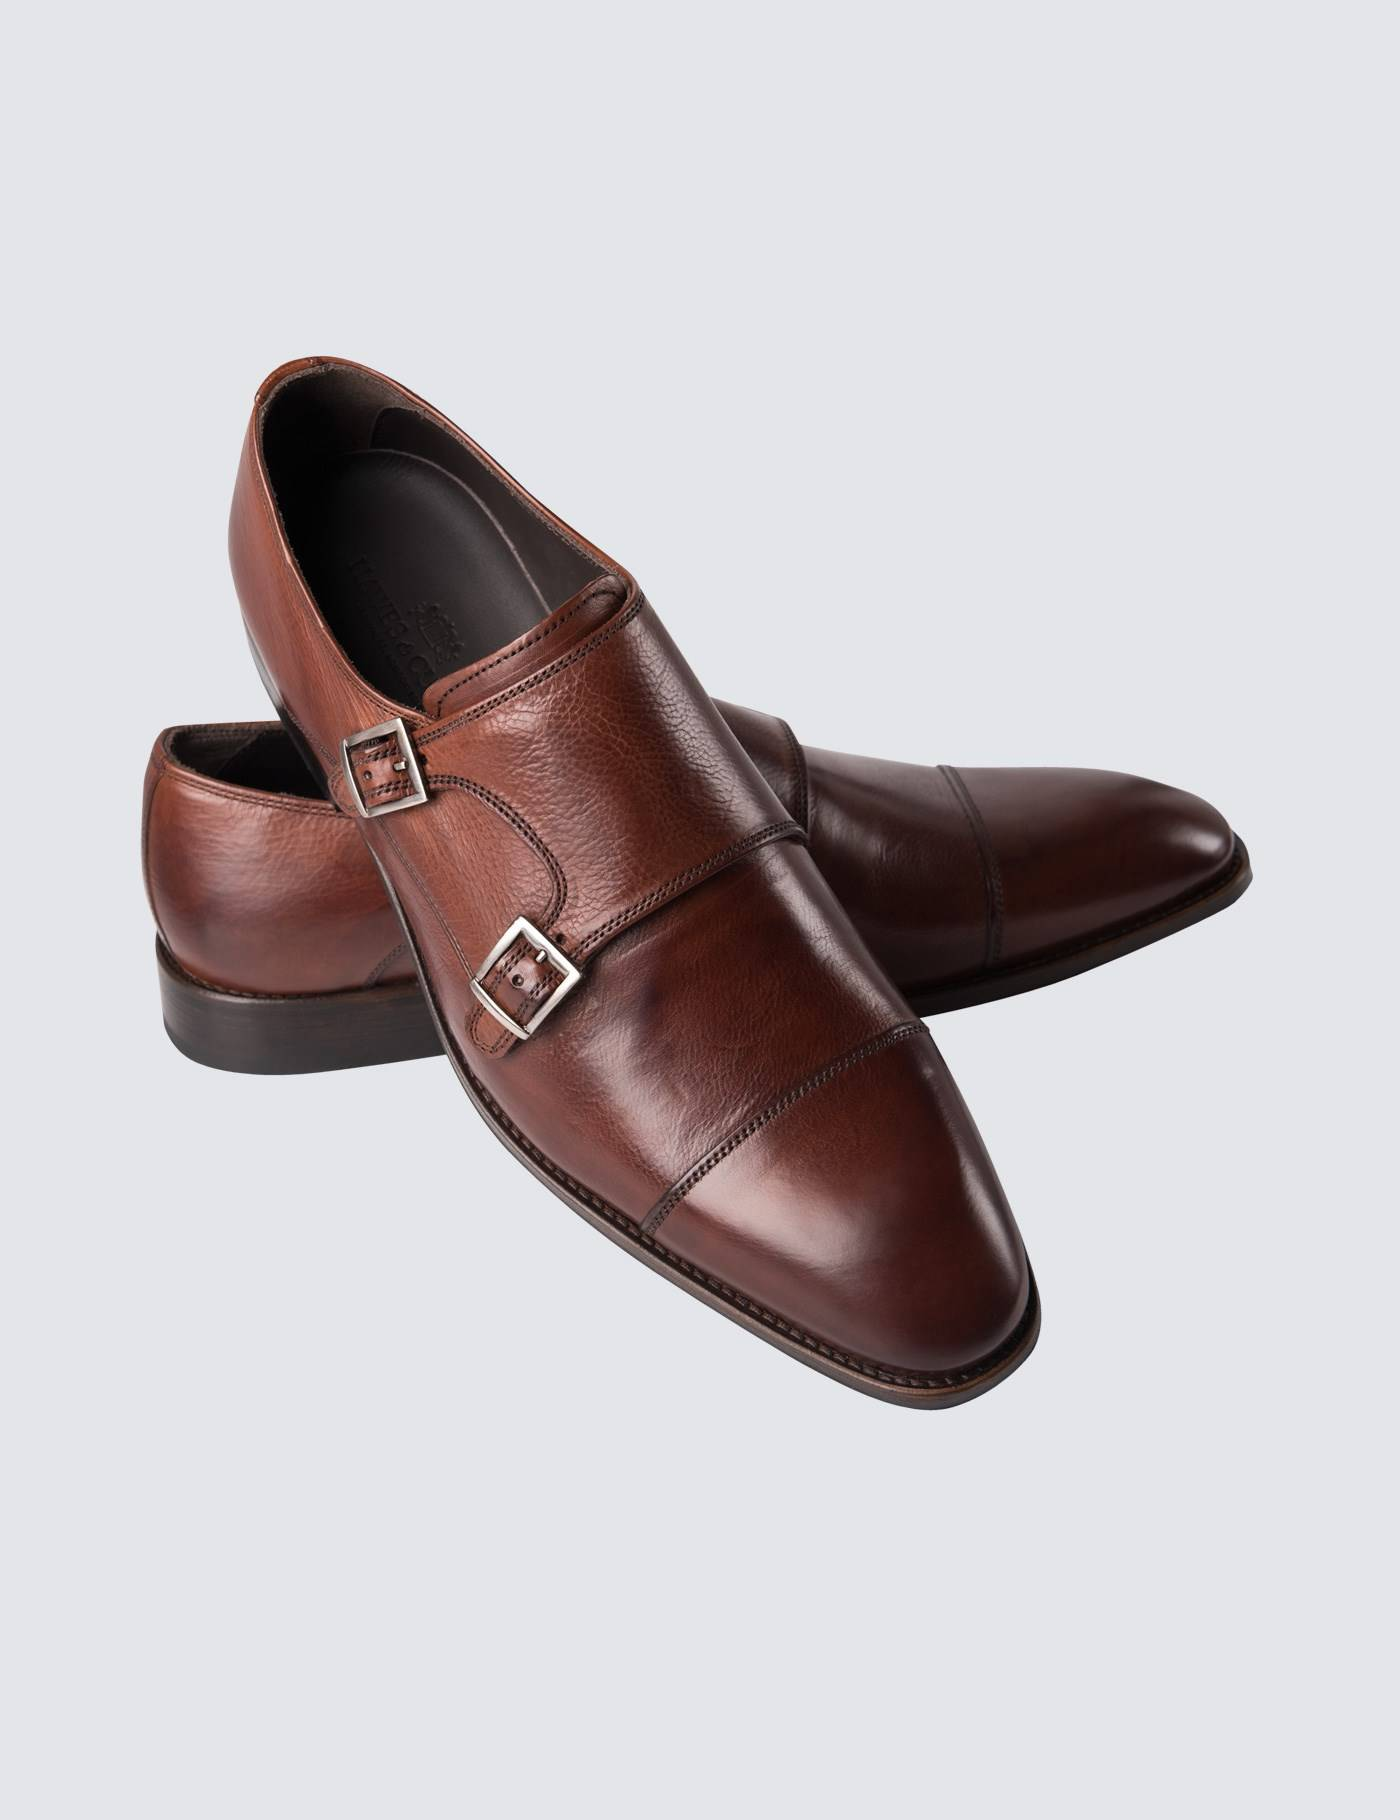 Hawes & Curtis Men's Leather Monk Shoes in Brown Size 9 Hawes & Curtis